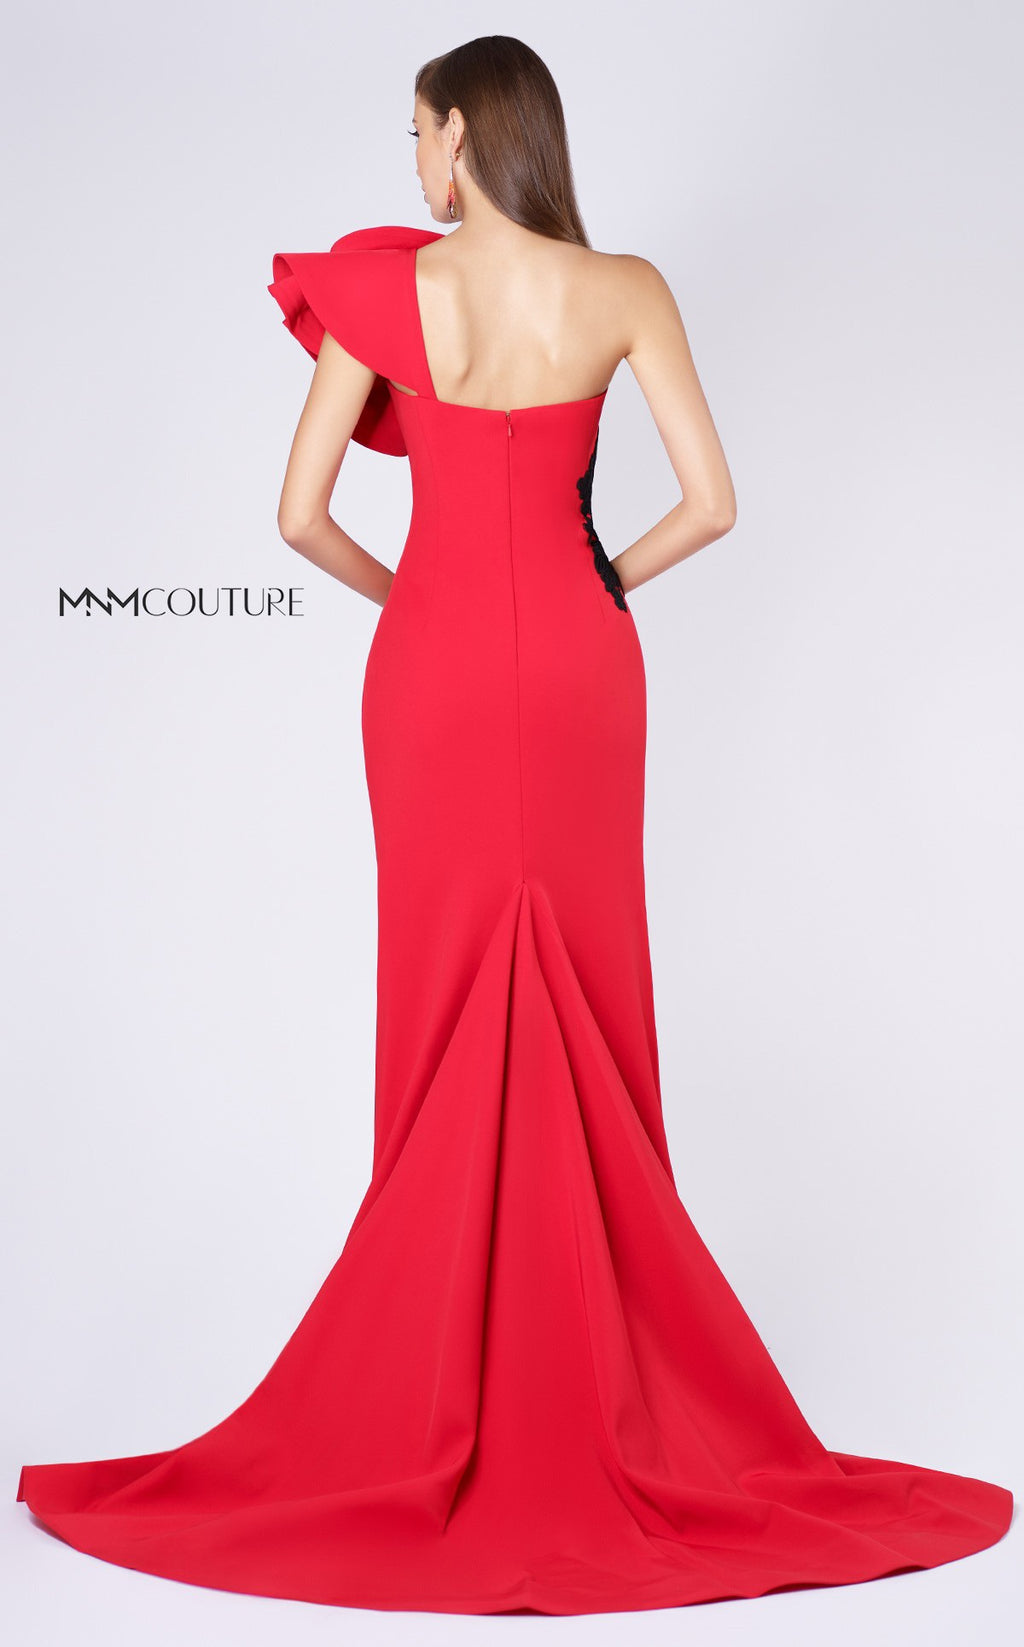 MNM Couture M0042 One Shoulder Evening Dress - CYC Boutique